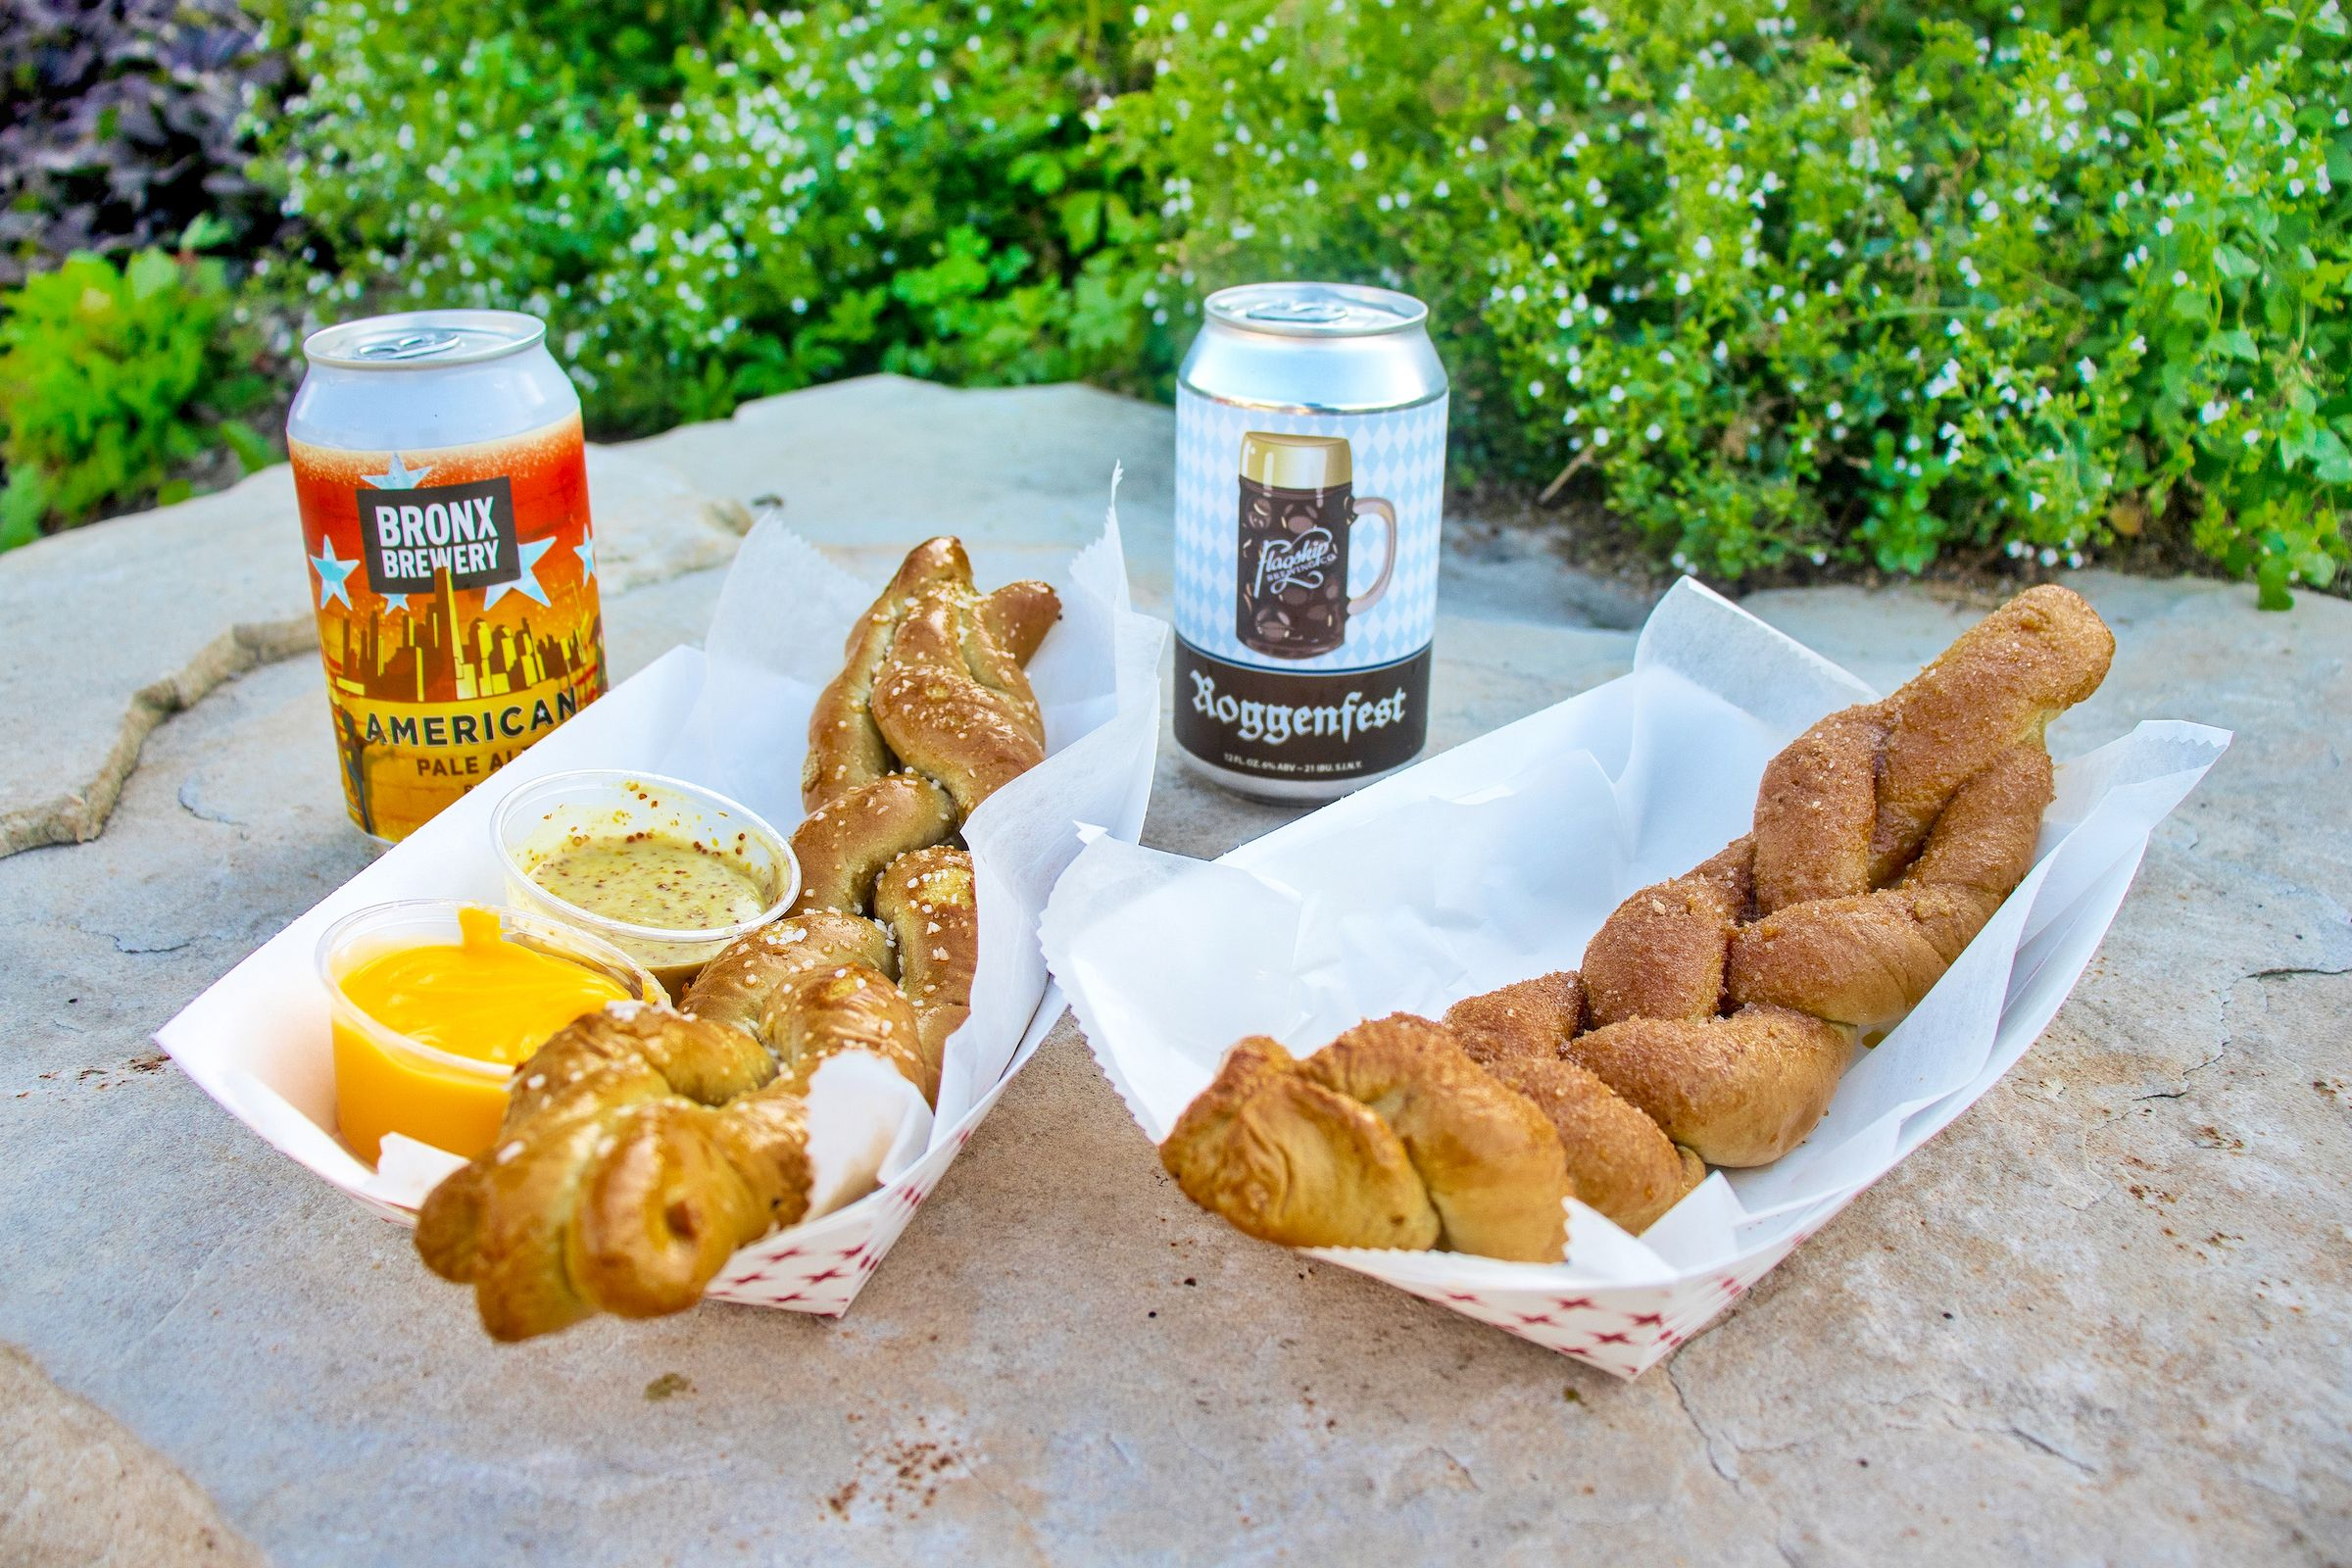 Two beer cans and one pretzel twist with salt and one pretzel twist with cinnamon sugar.